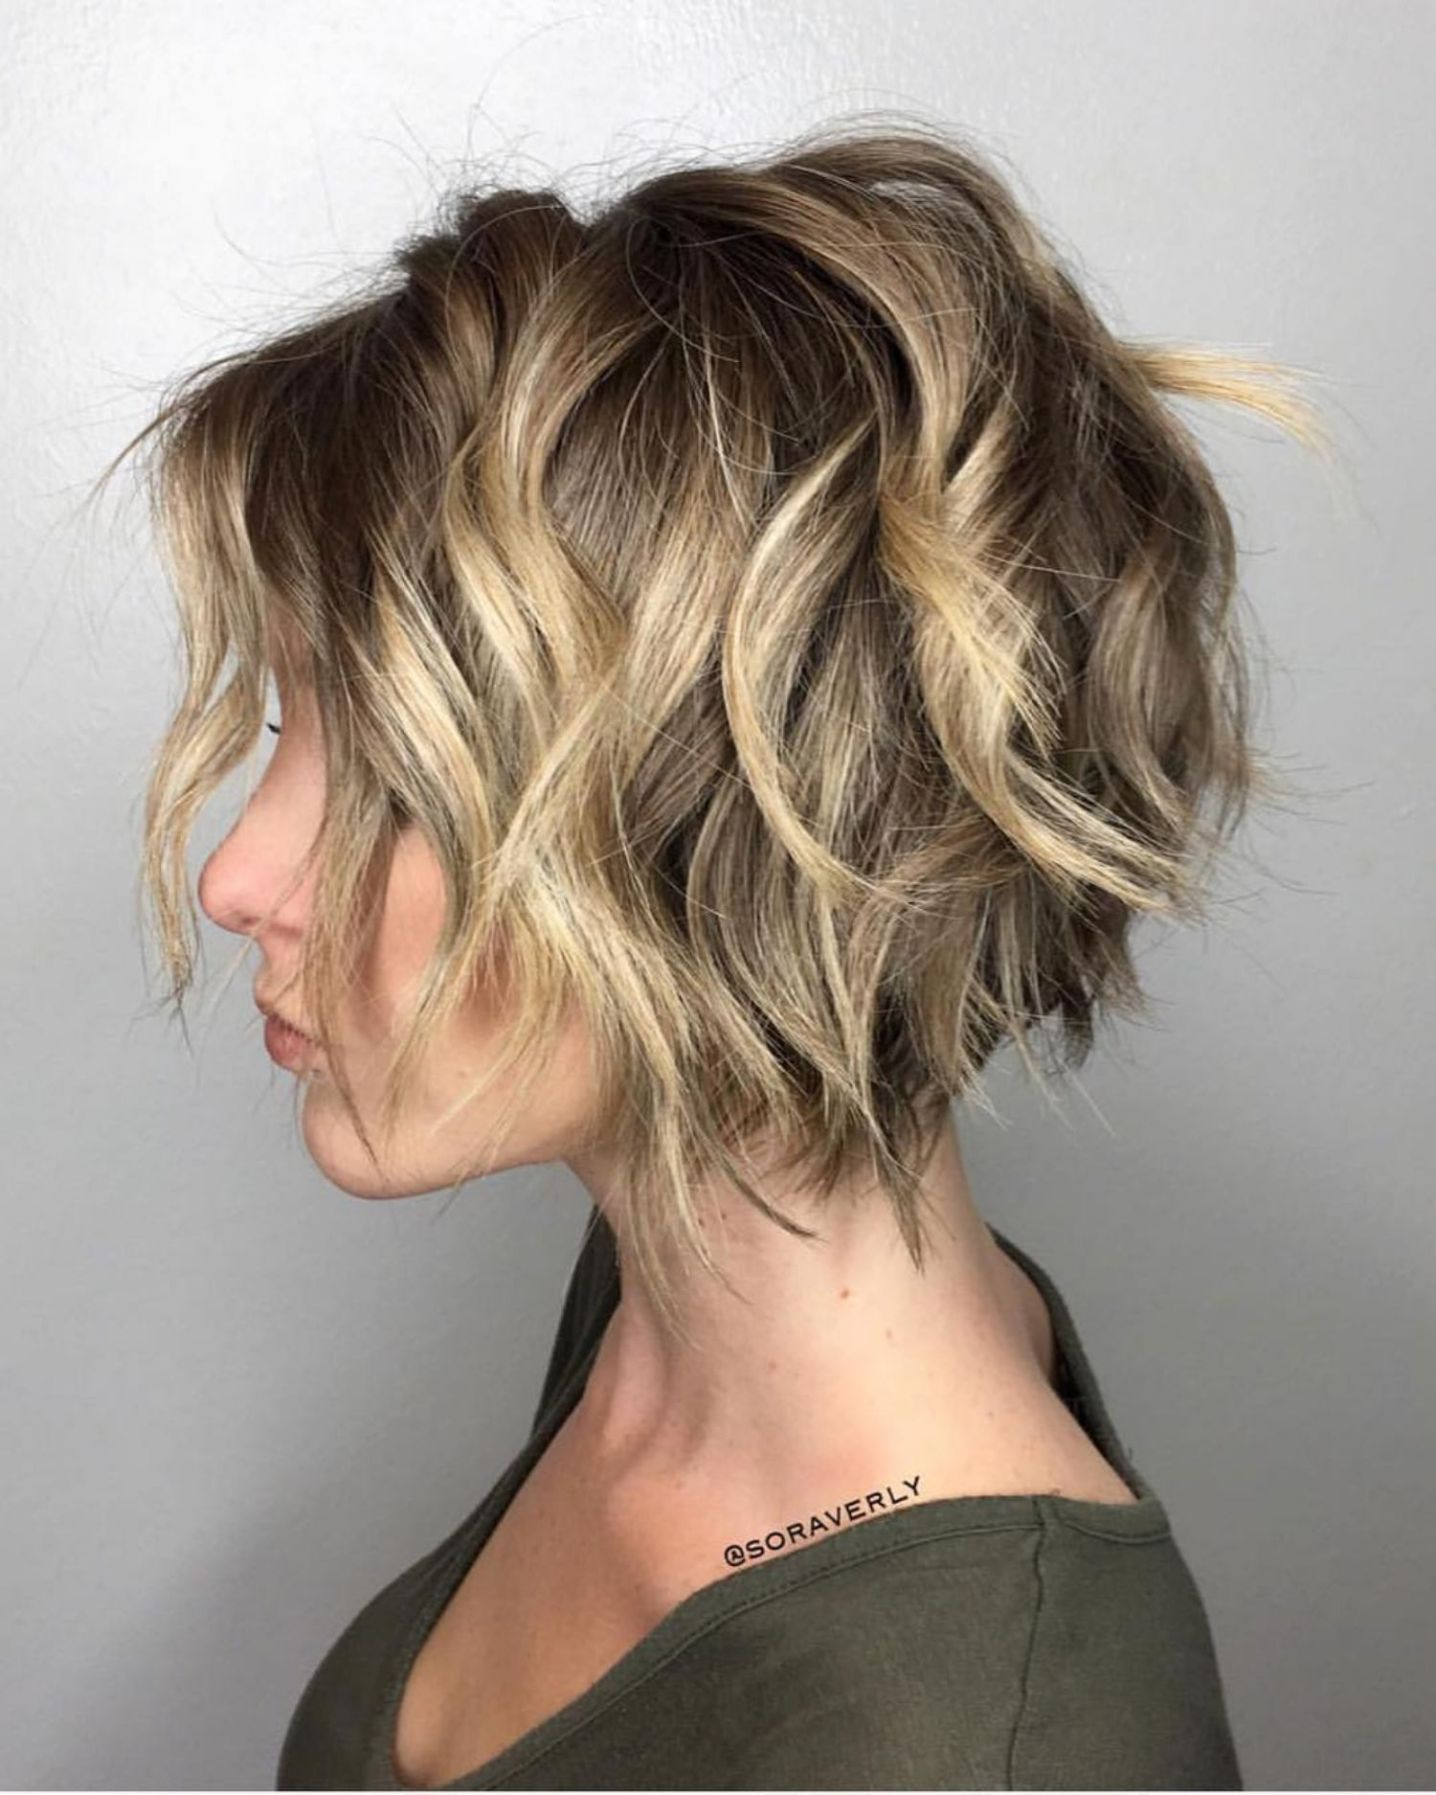 50 Gorgeous Wavy Bob Hairstyles With An Extra Touch Of Femininity Hair Styles Wavy Bob Hairstyles Messy Bob Hairstyles